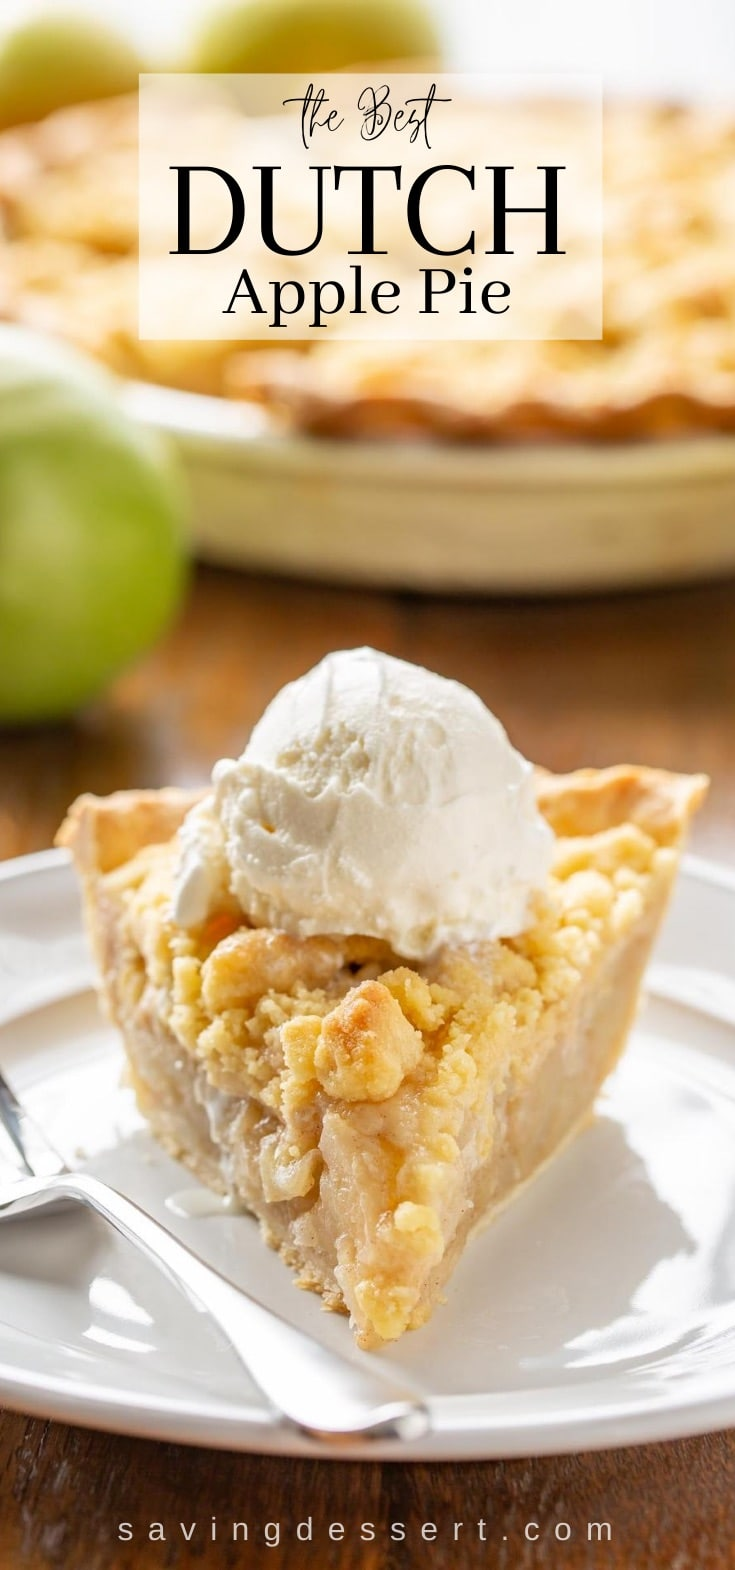 A slice of apple pie with a crumble top on a plate topped with vanilla ice cream